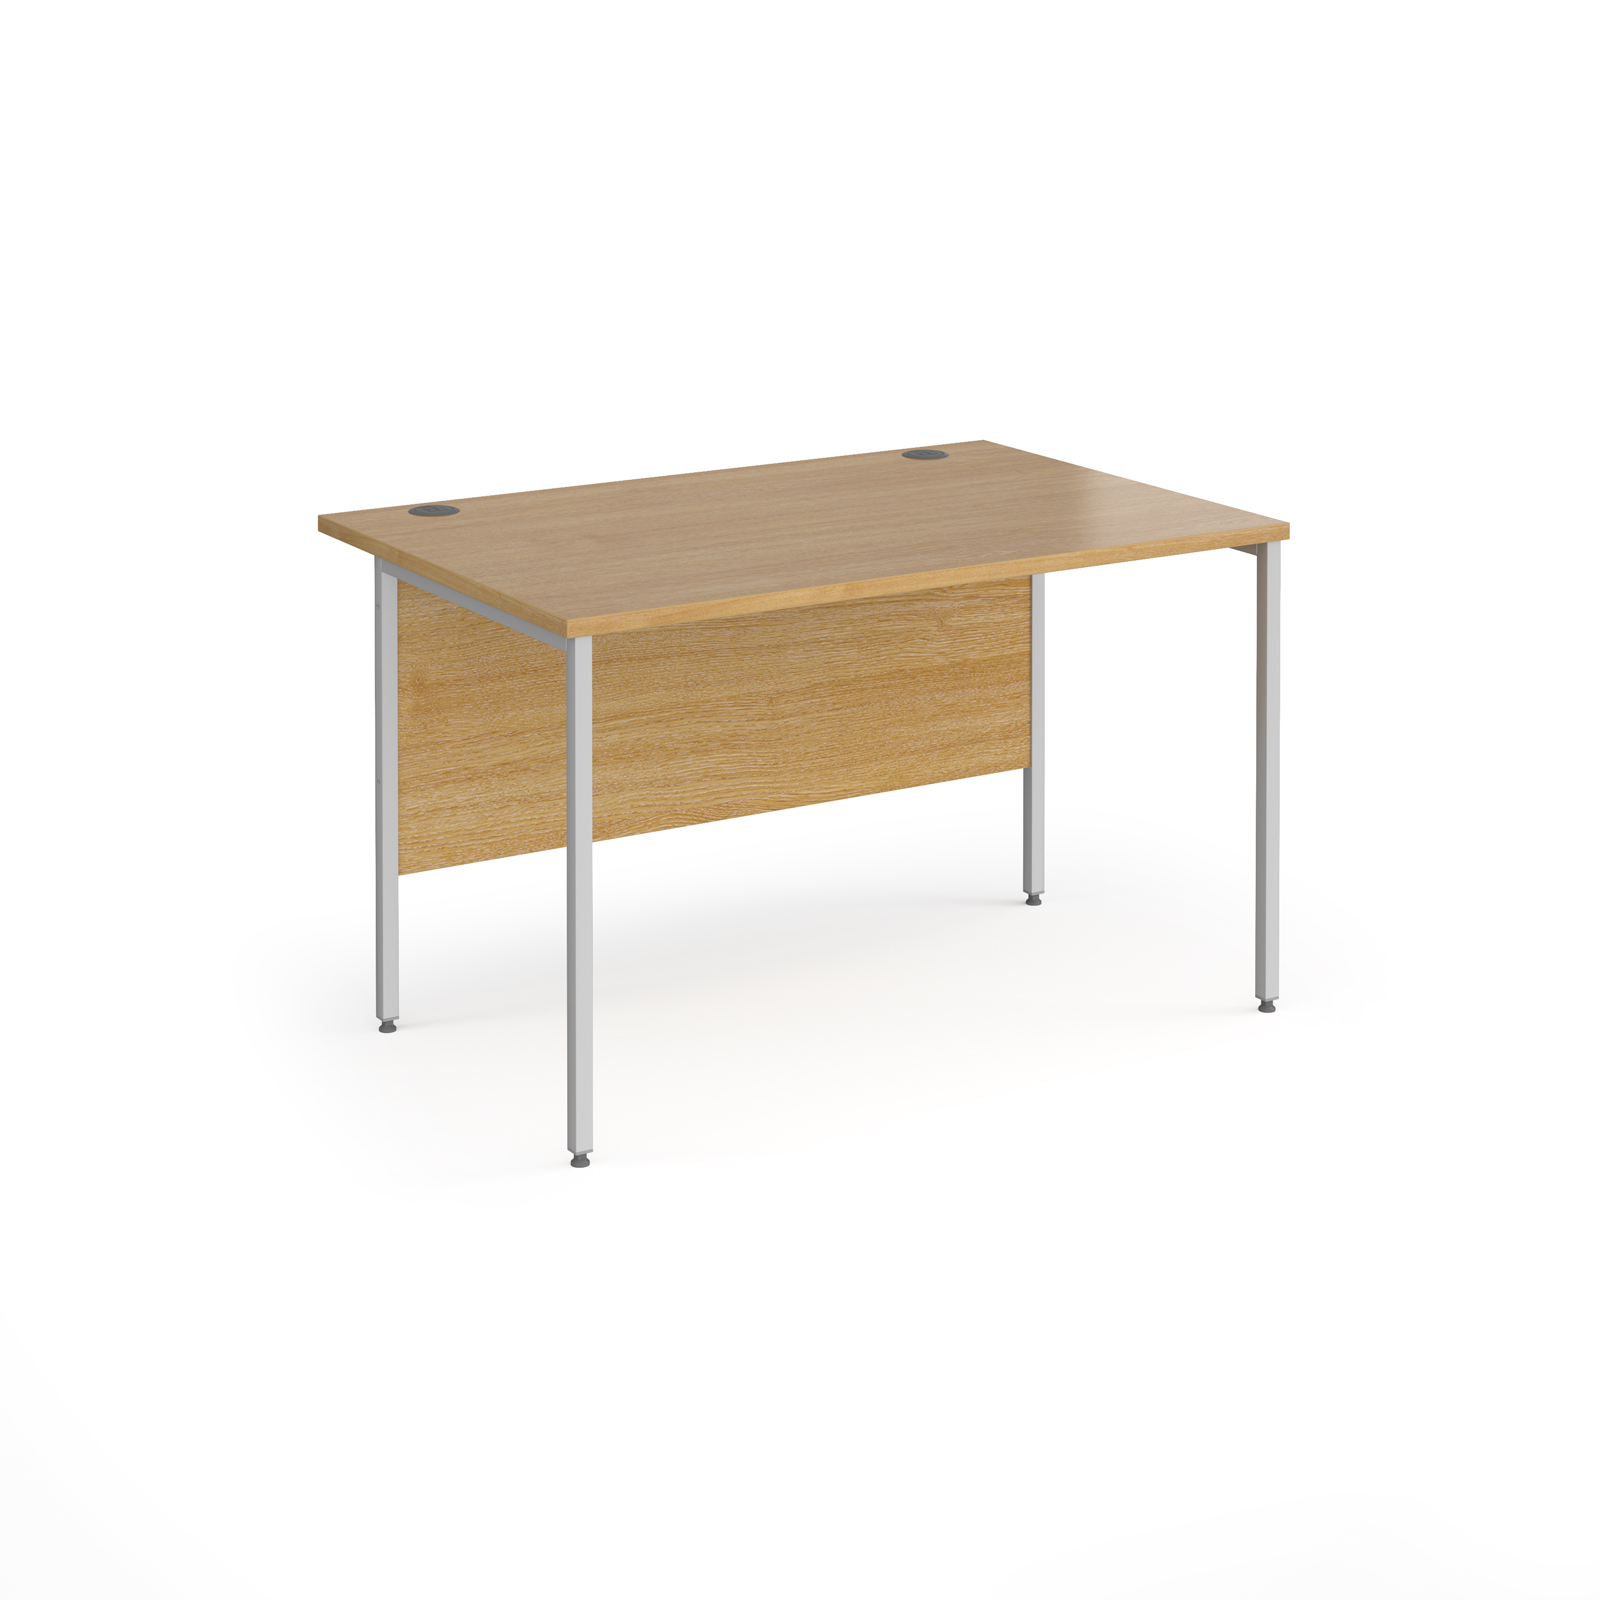 Contract 25 straight desk with silver H-Frame leg 1200mm x 800mm - oak top